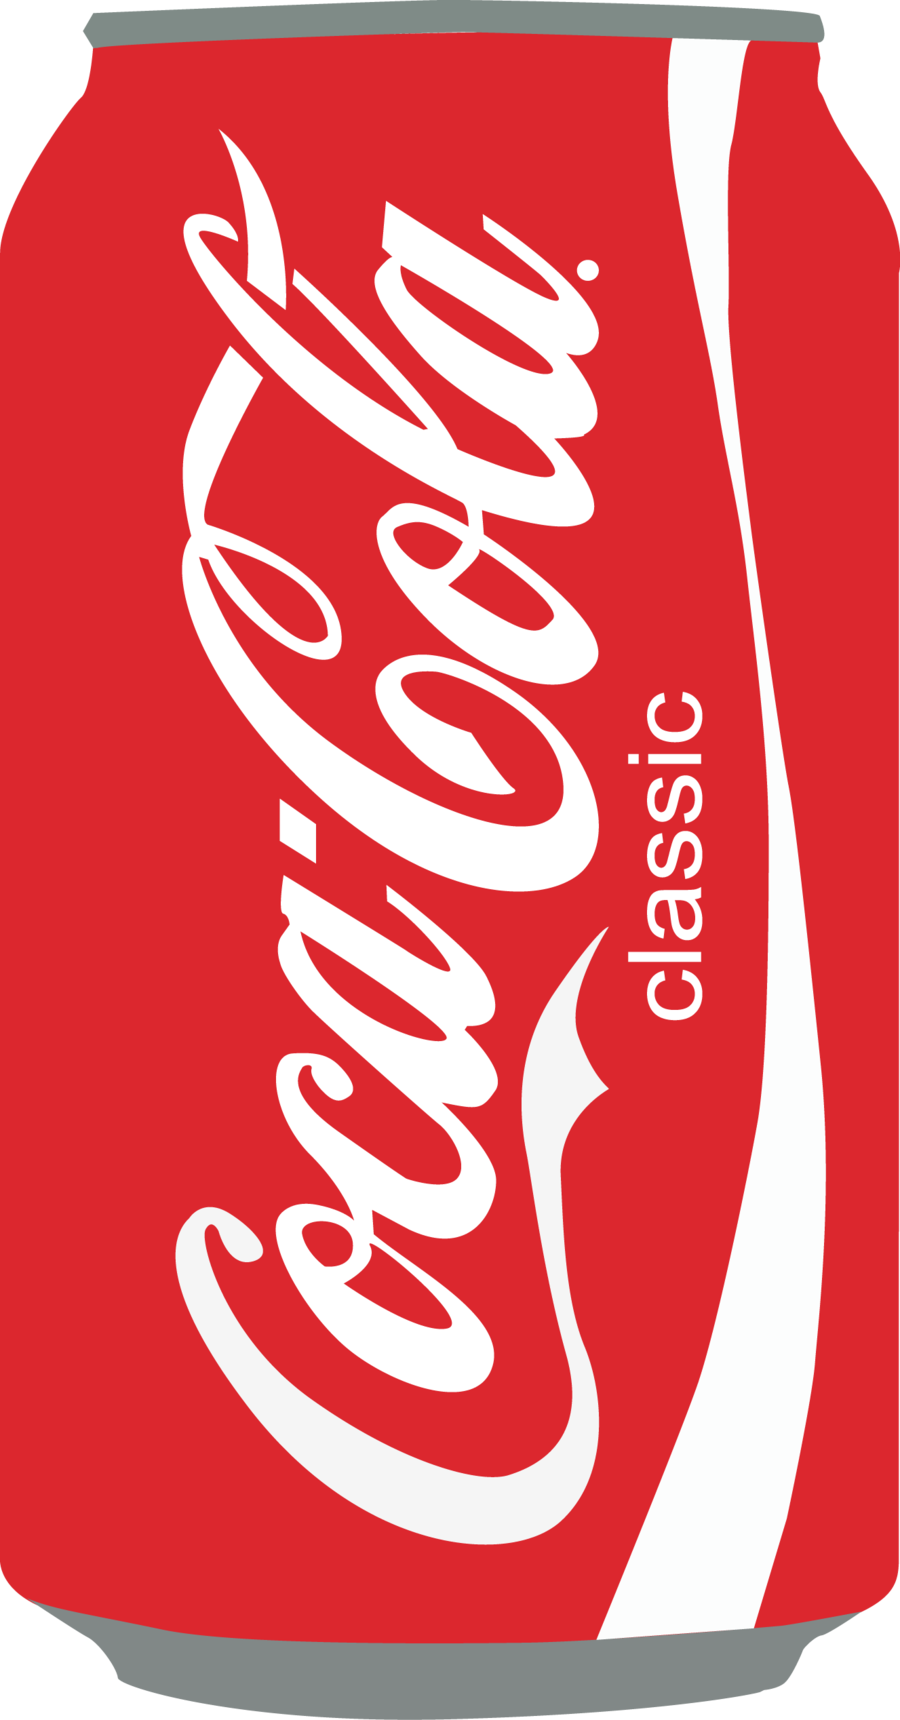 Coca Cola clipart #1, Download drawings